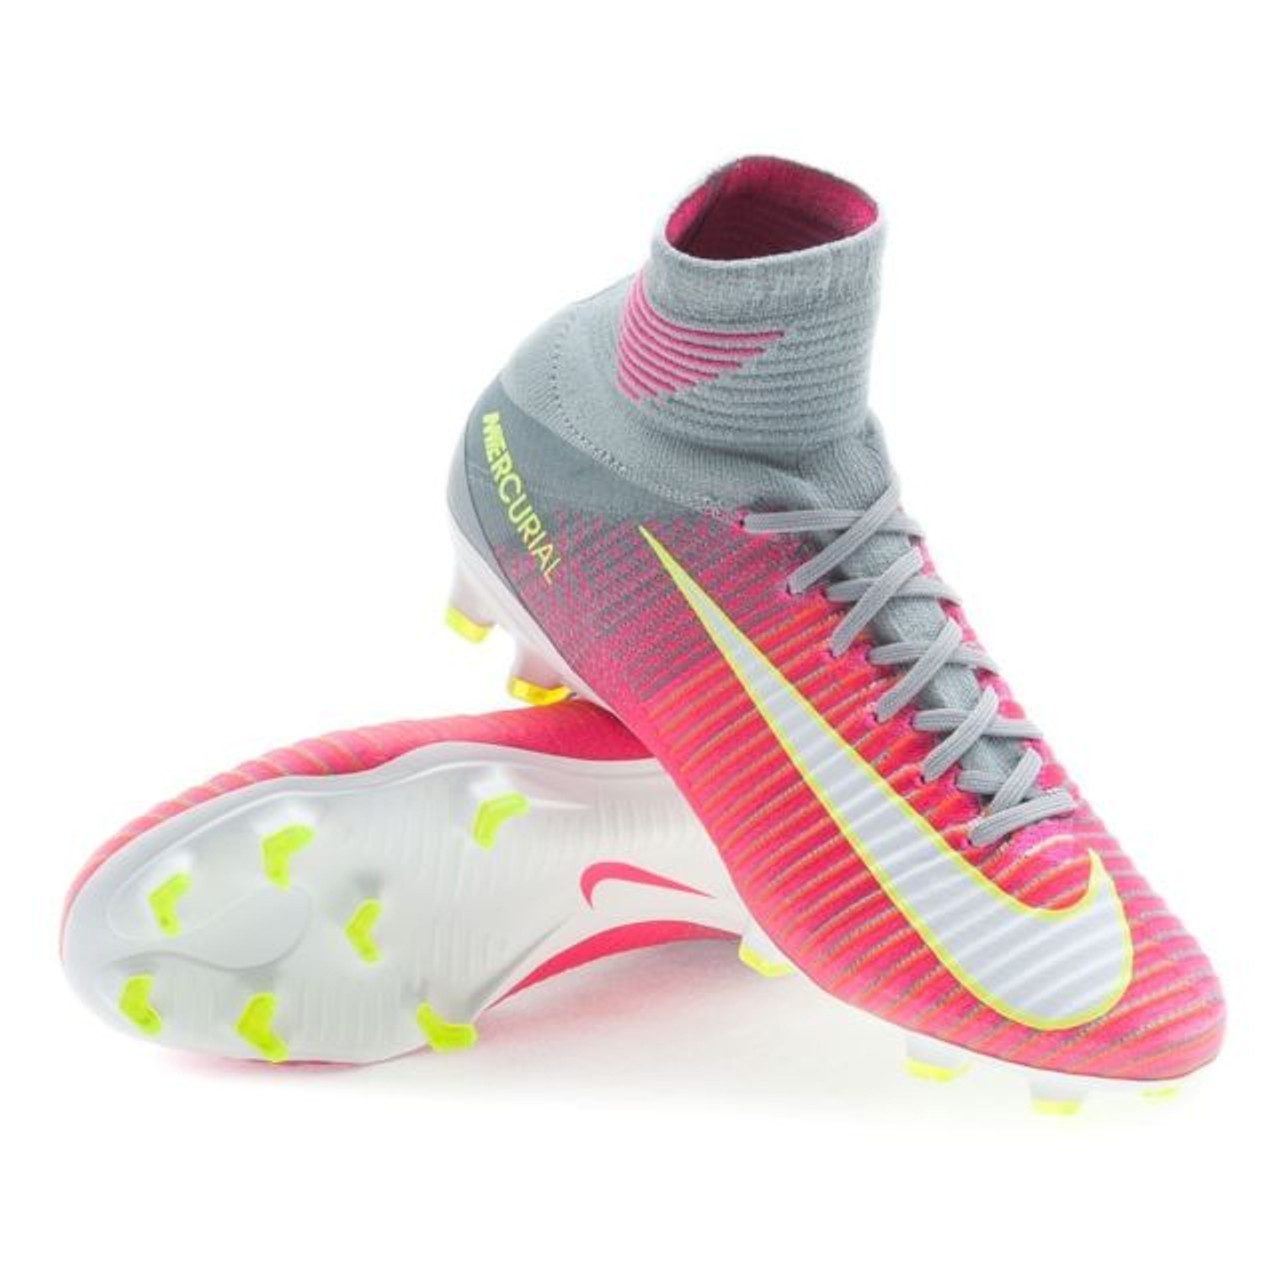 28ad38c56b4 NIKE SUPERFLY WOMEN S FG PINK GREY - Soccer Plus